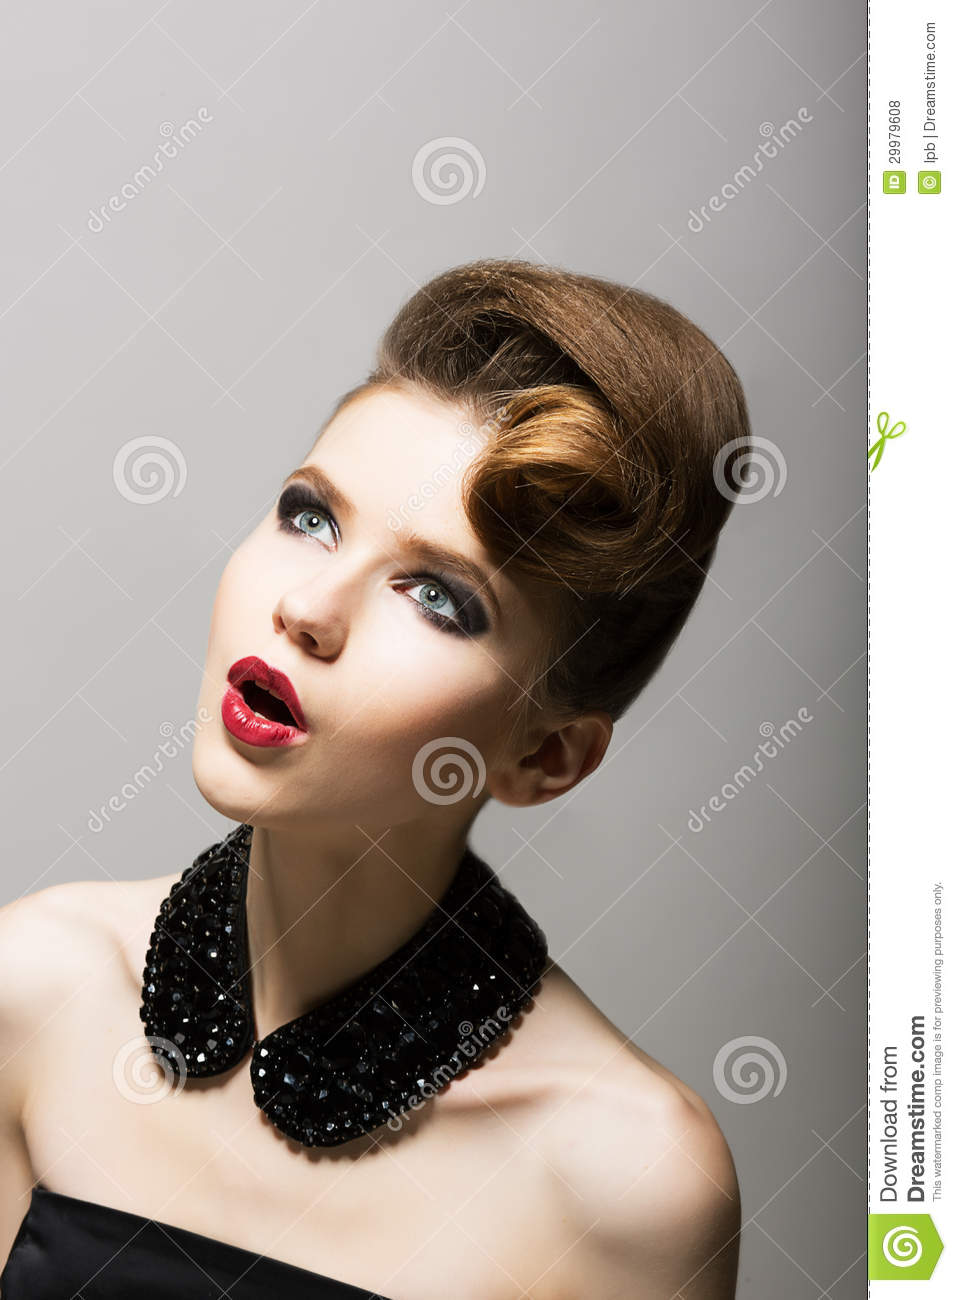 ... . Daze. Amazed Woman s Face. Surprised Young Person with Black Beads